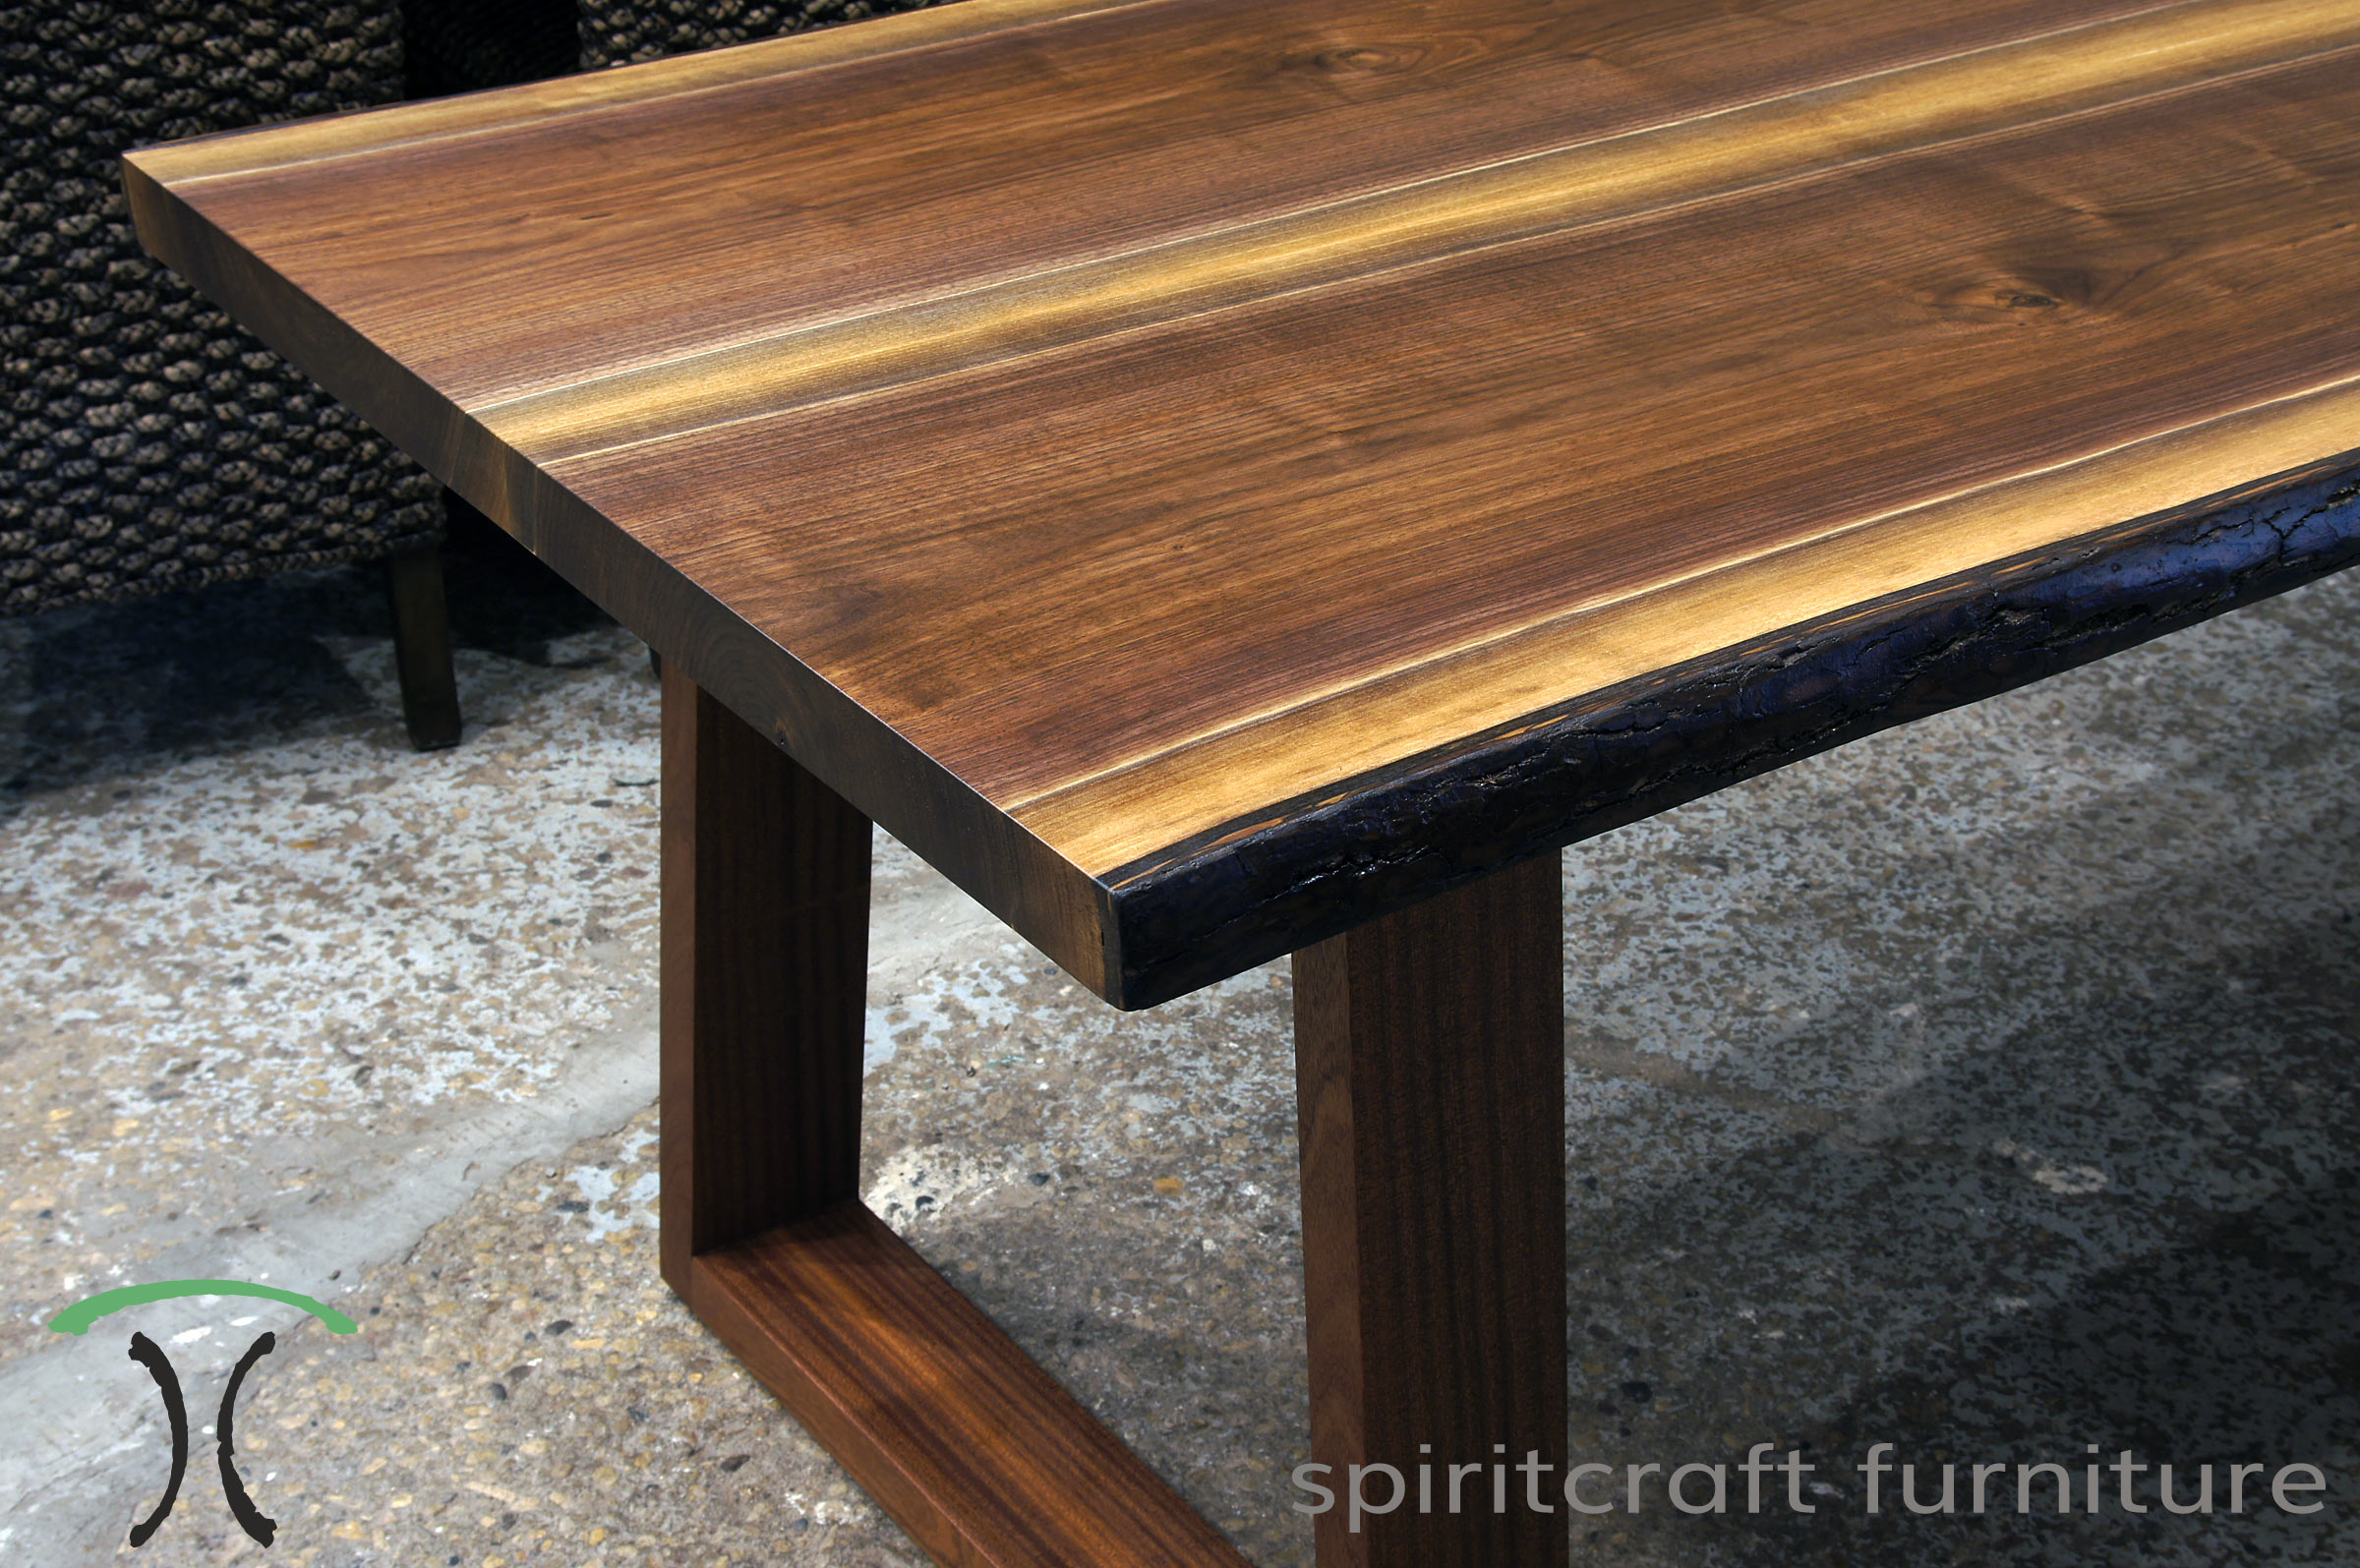 Live edge dining, conference table or desk in solid Black Walnut on Sapele inverted trapezoid legs, displayed at our retail slab furniture store in Chicago area, East Dundee, Illinois